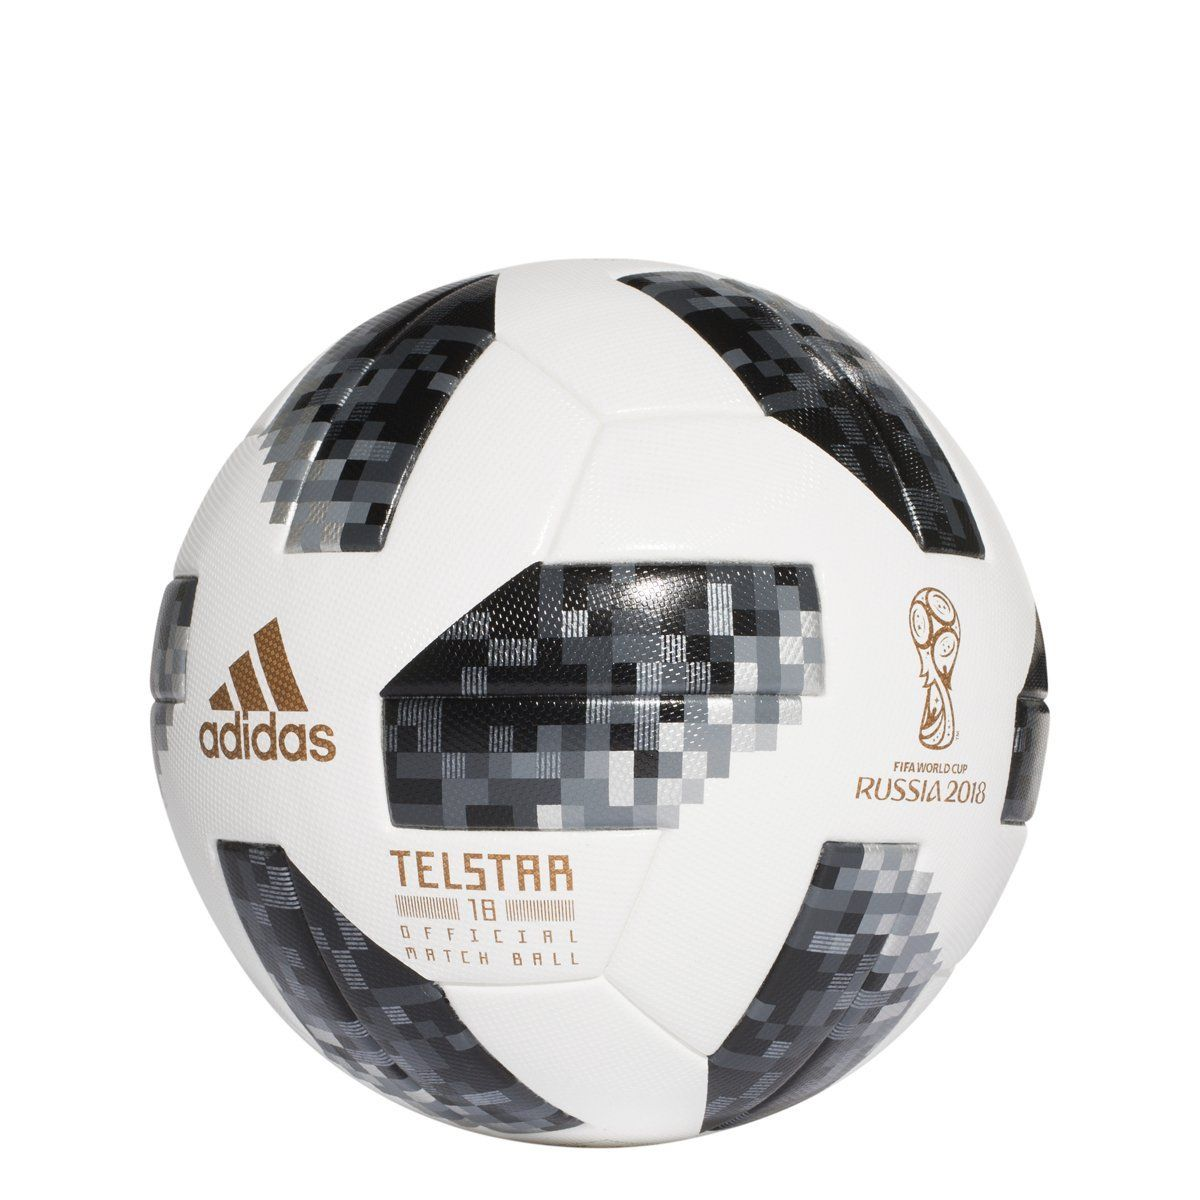 Adidas Telstar 18 Soccer Ball Review Guide In 2020 With Images Soccer Ball Soccer Soccer Shop